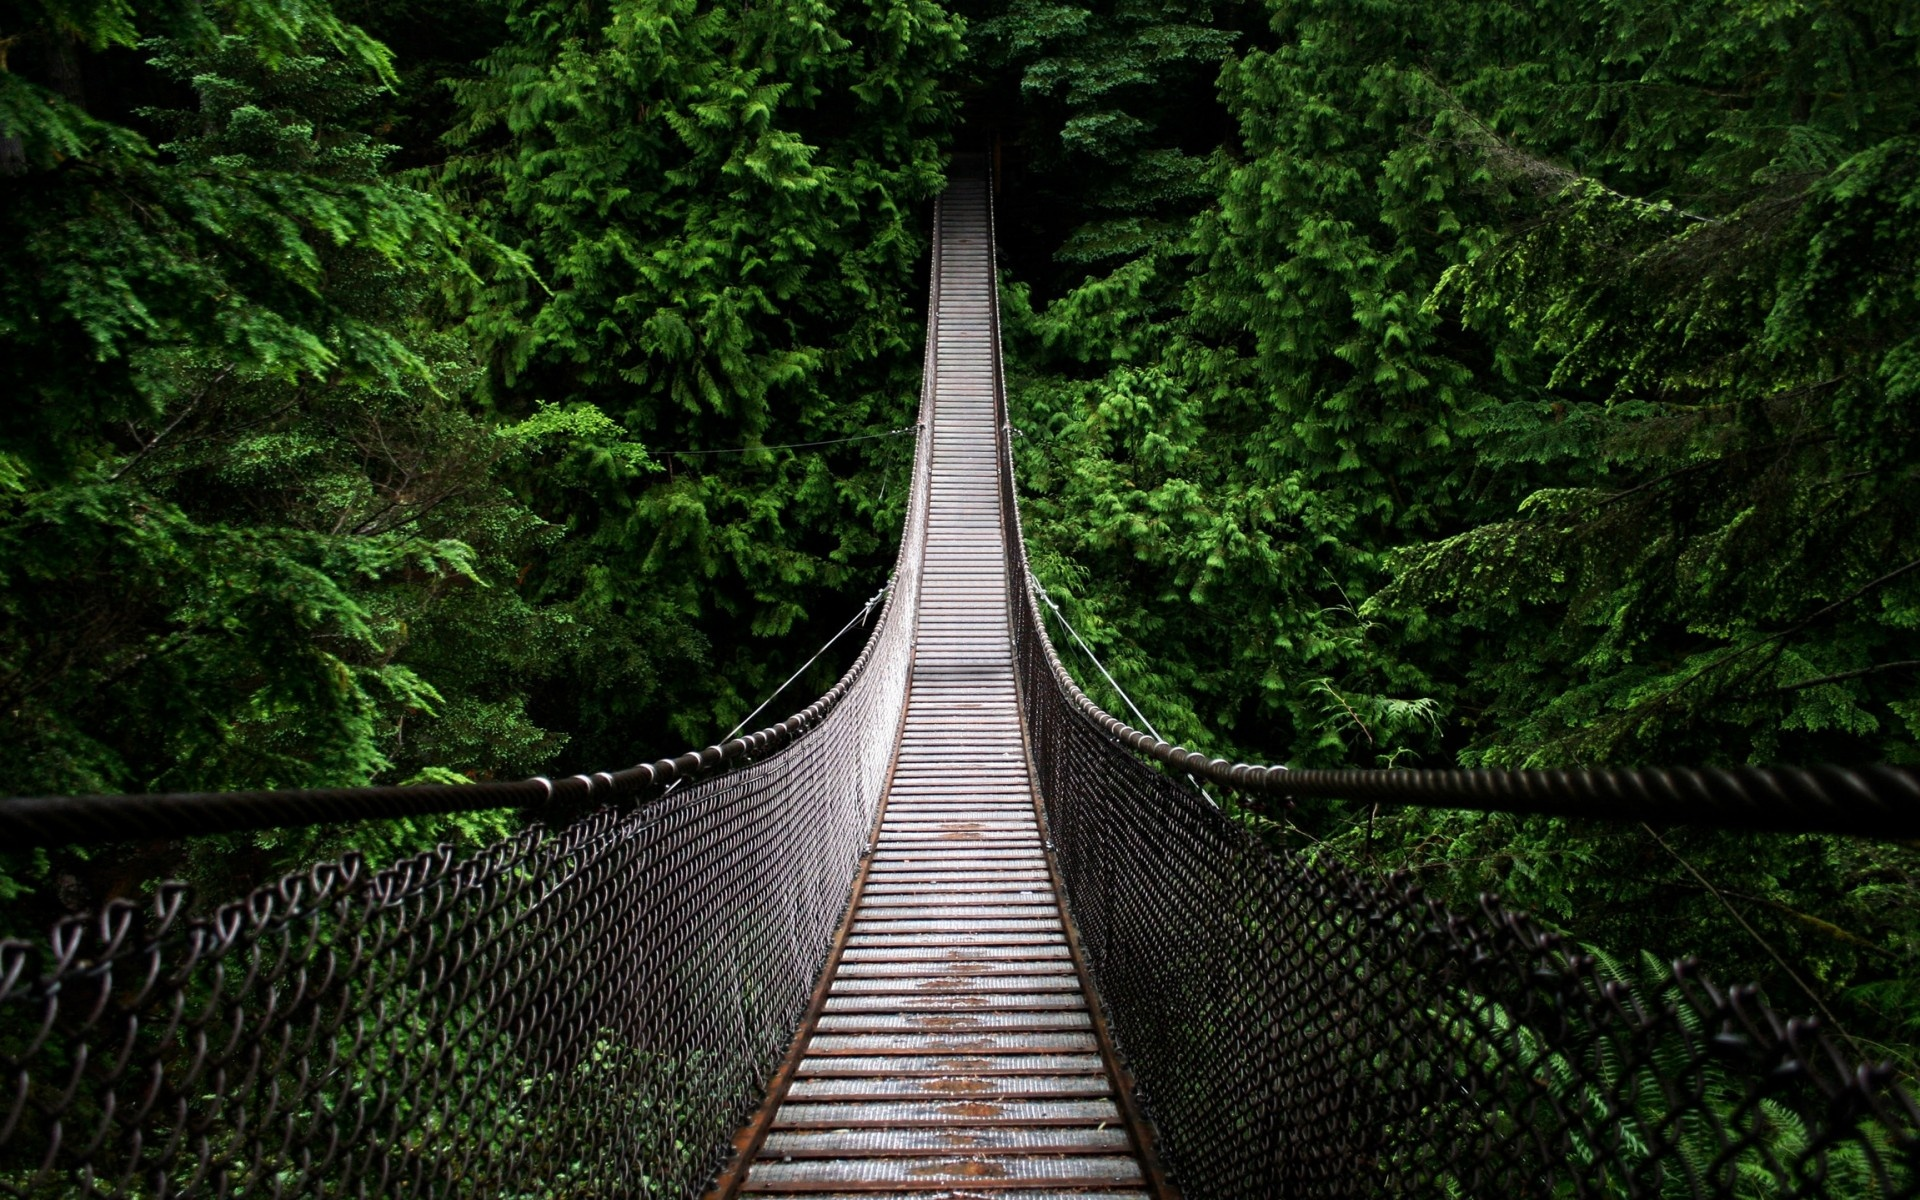 Cool Hanging Bridge Wallpaper in 1920x1200 Widescreen